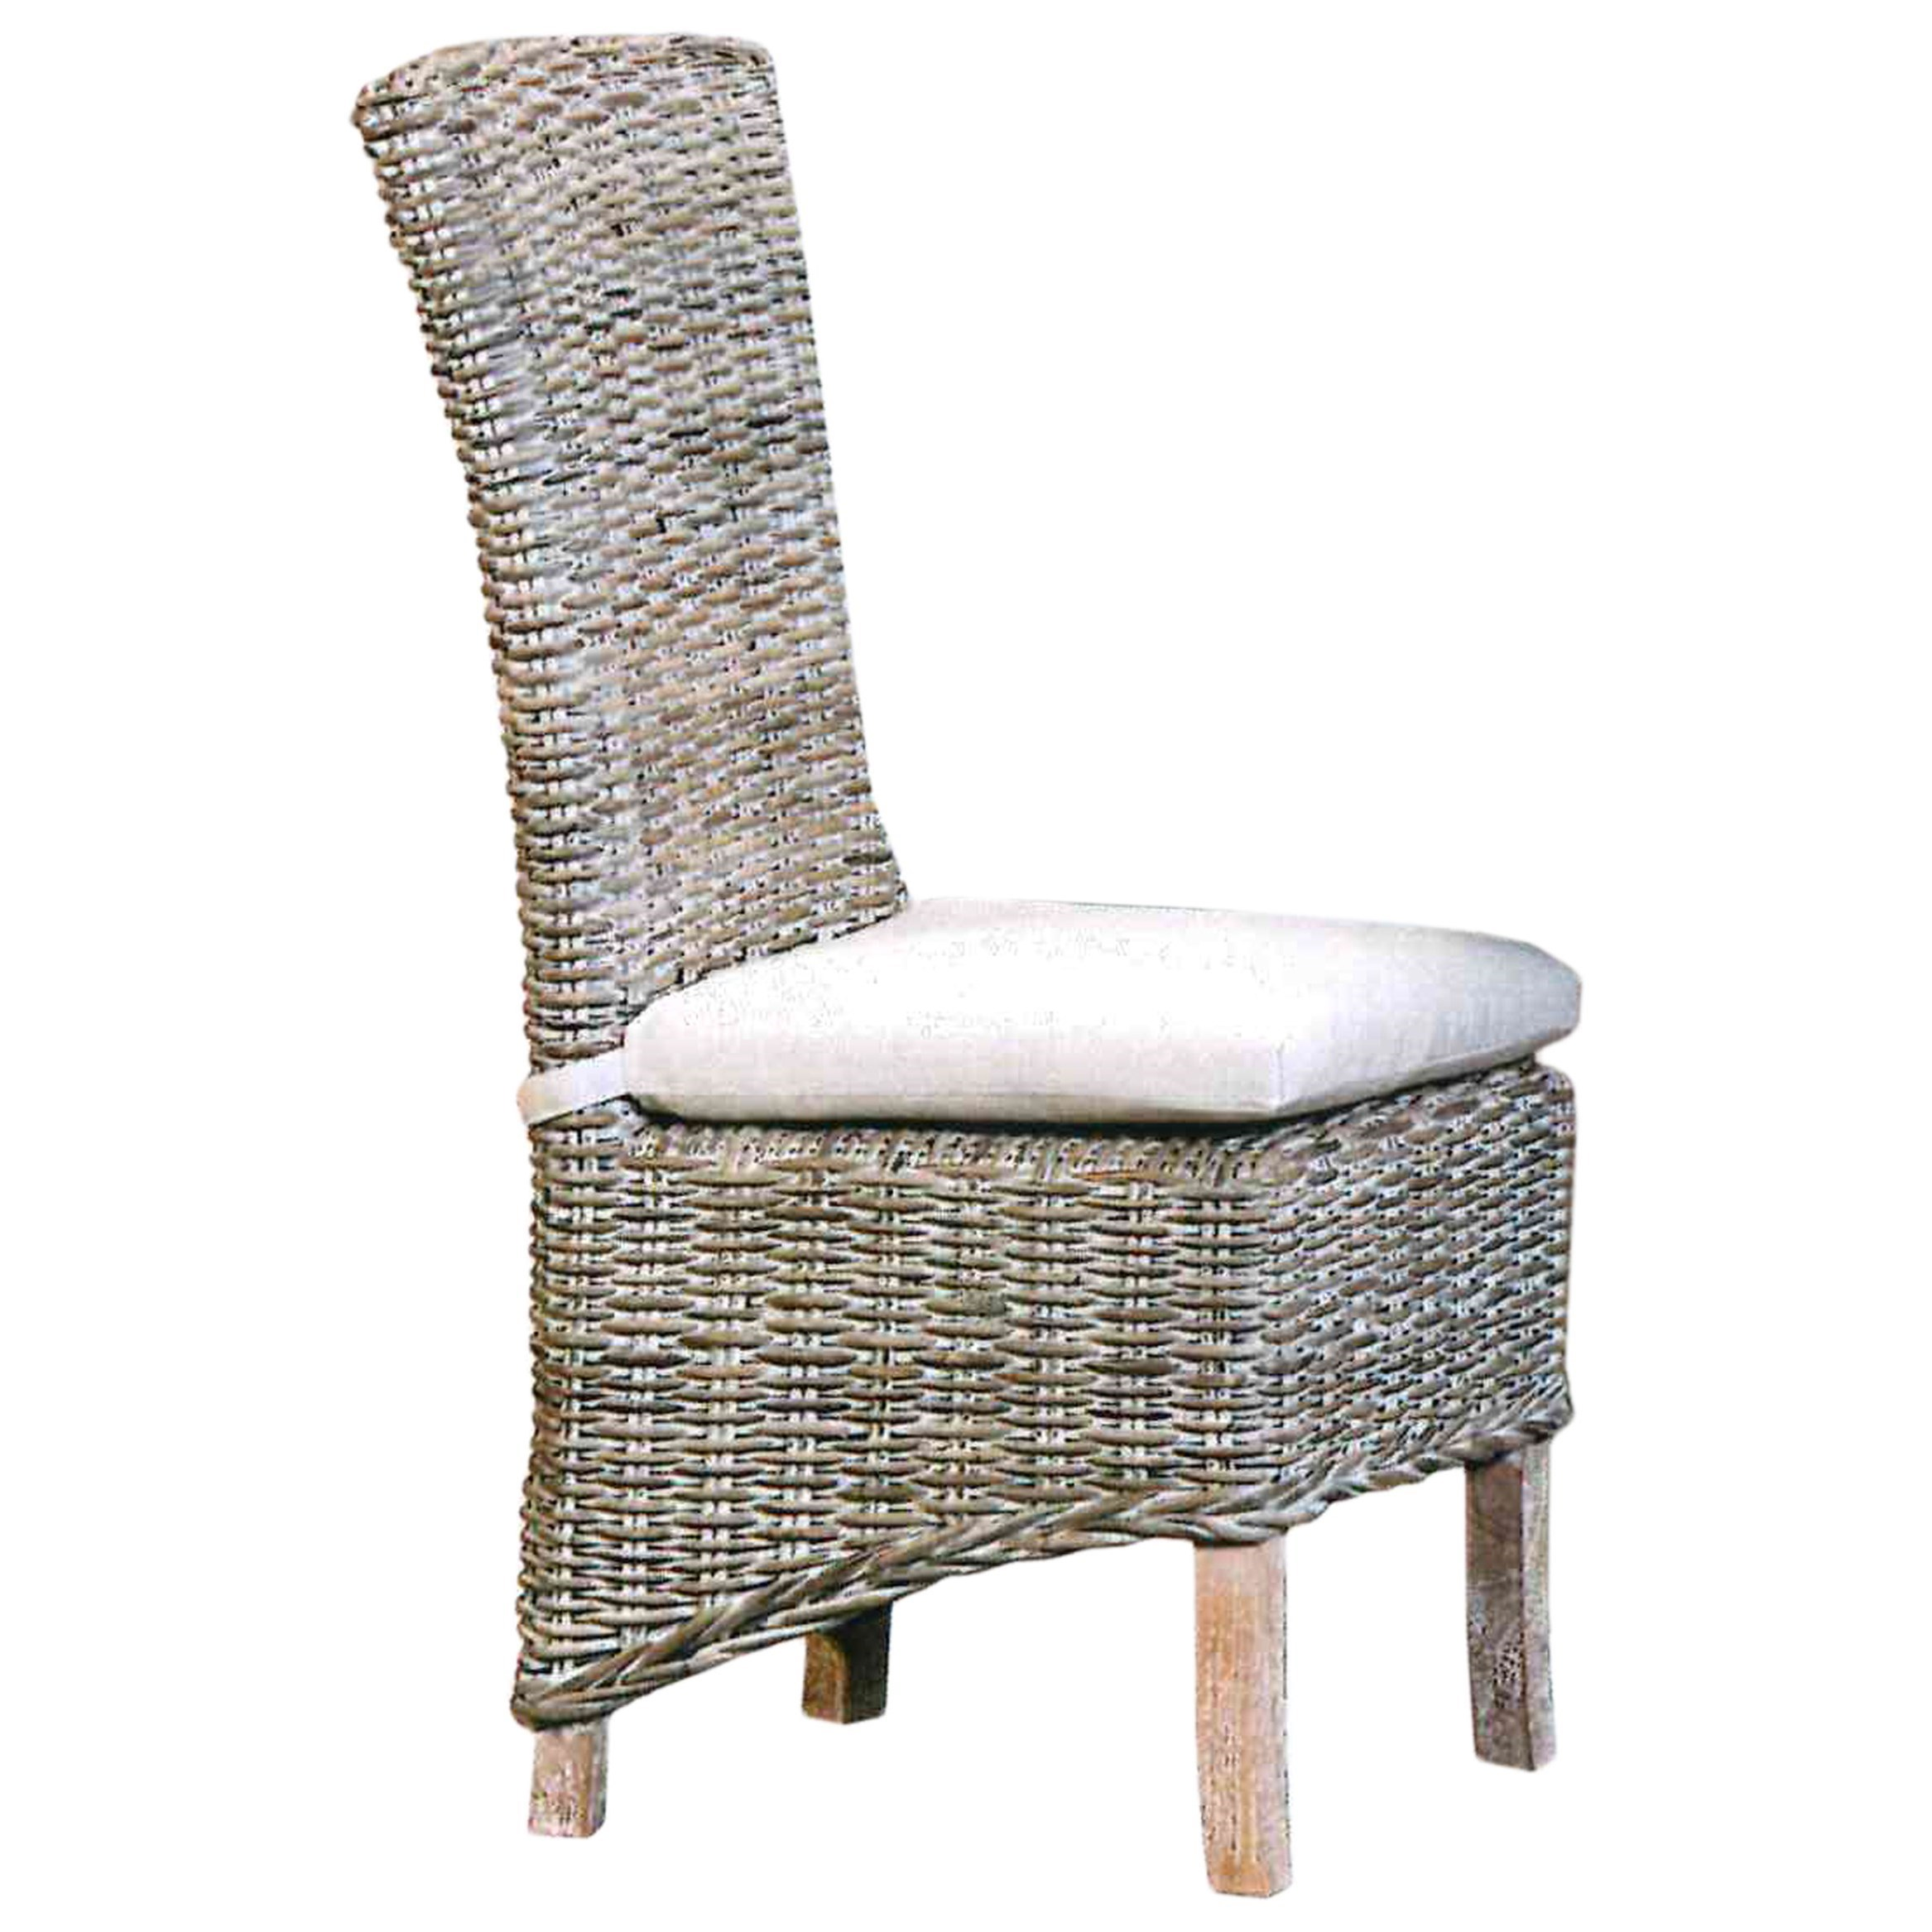 Capris Furniture Chairs And Ottomans Weathered Gray Wicker Dining Chair  With Tie On Cushion